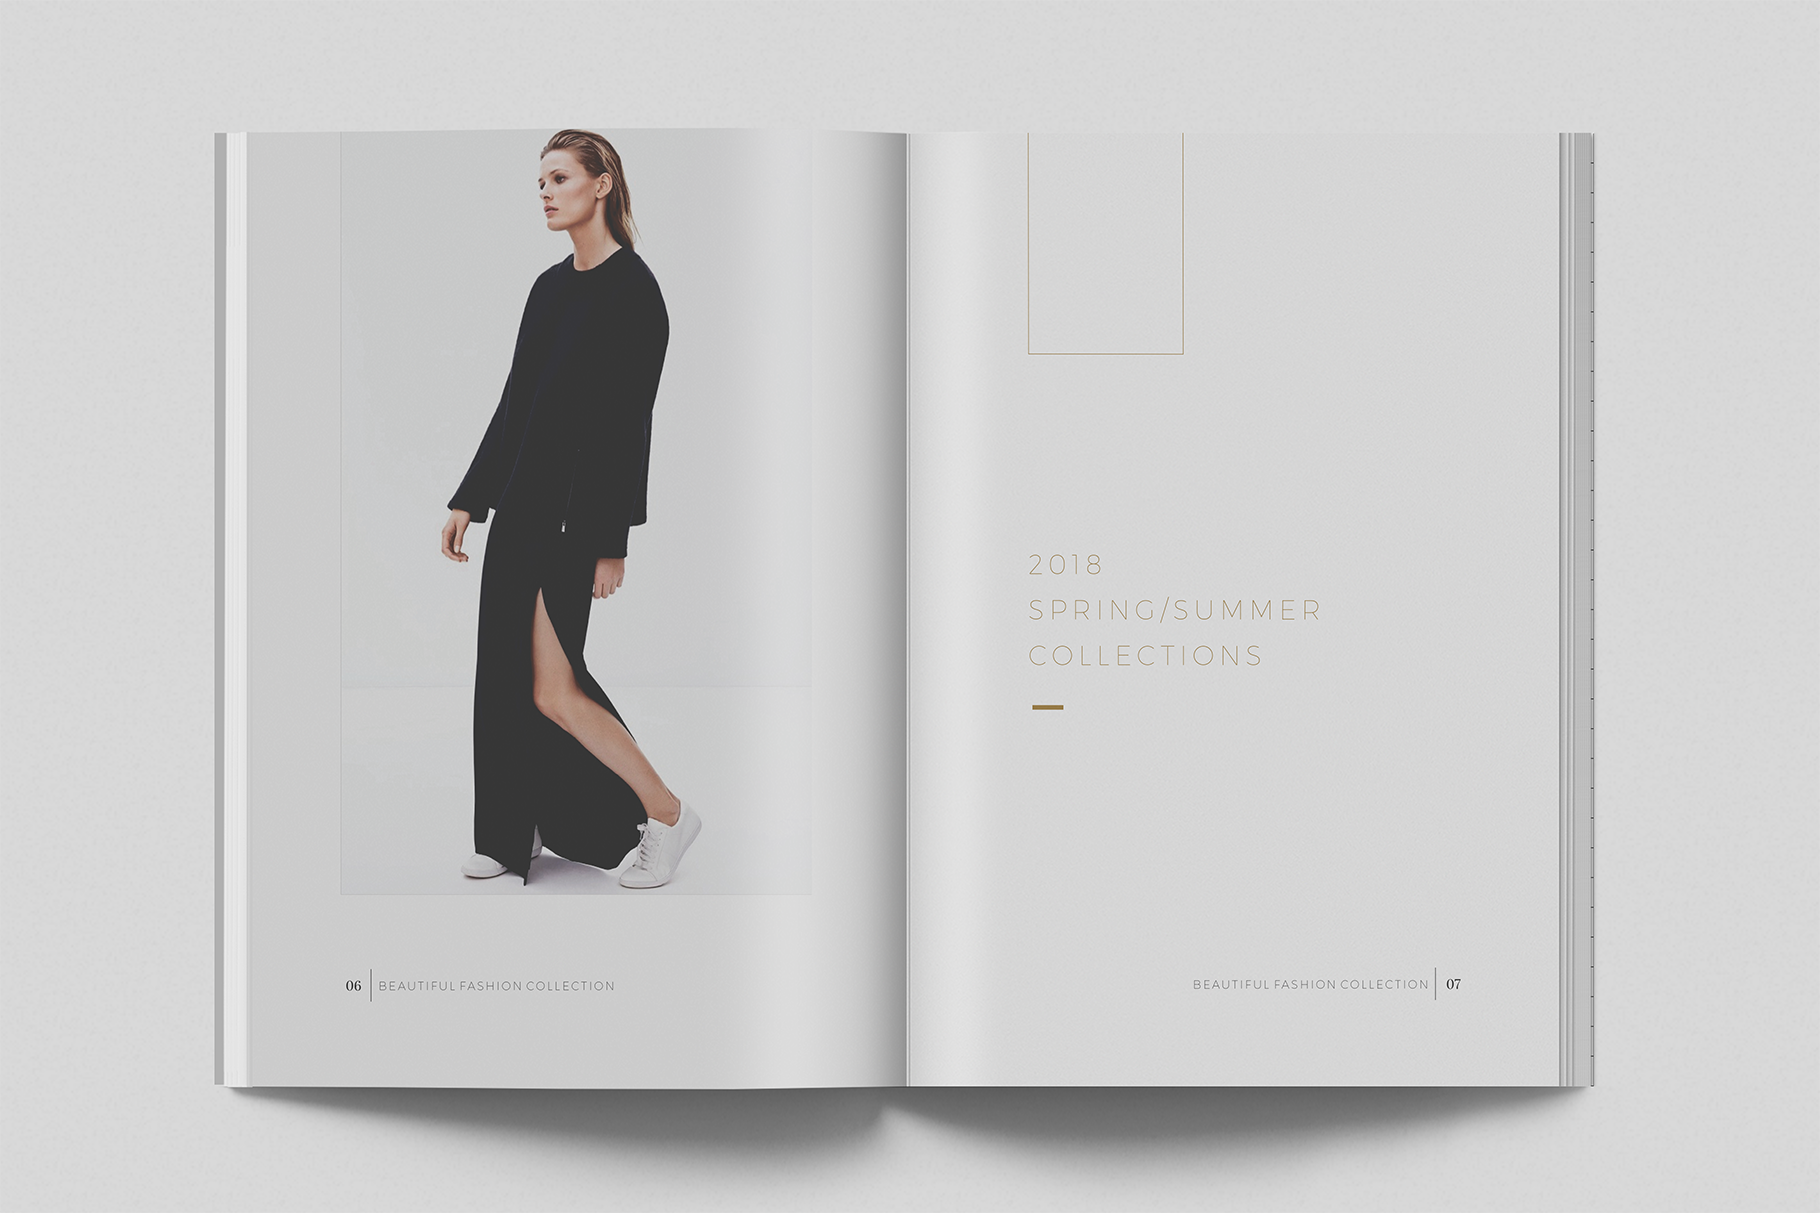 pakean minimal lookbook magazine graphic by onedsgn creative fabrica